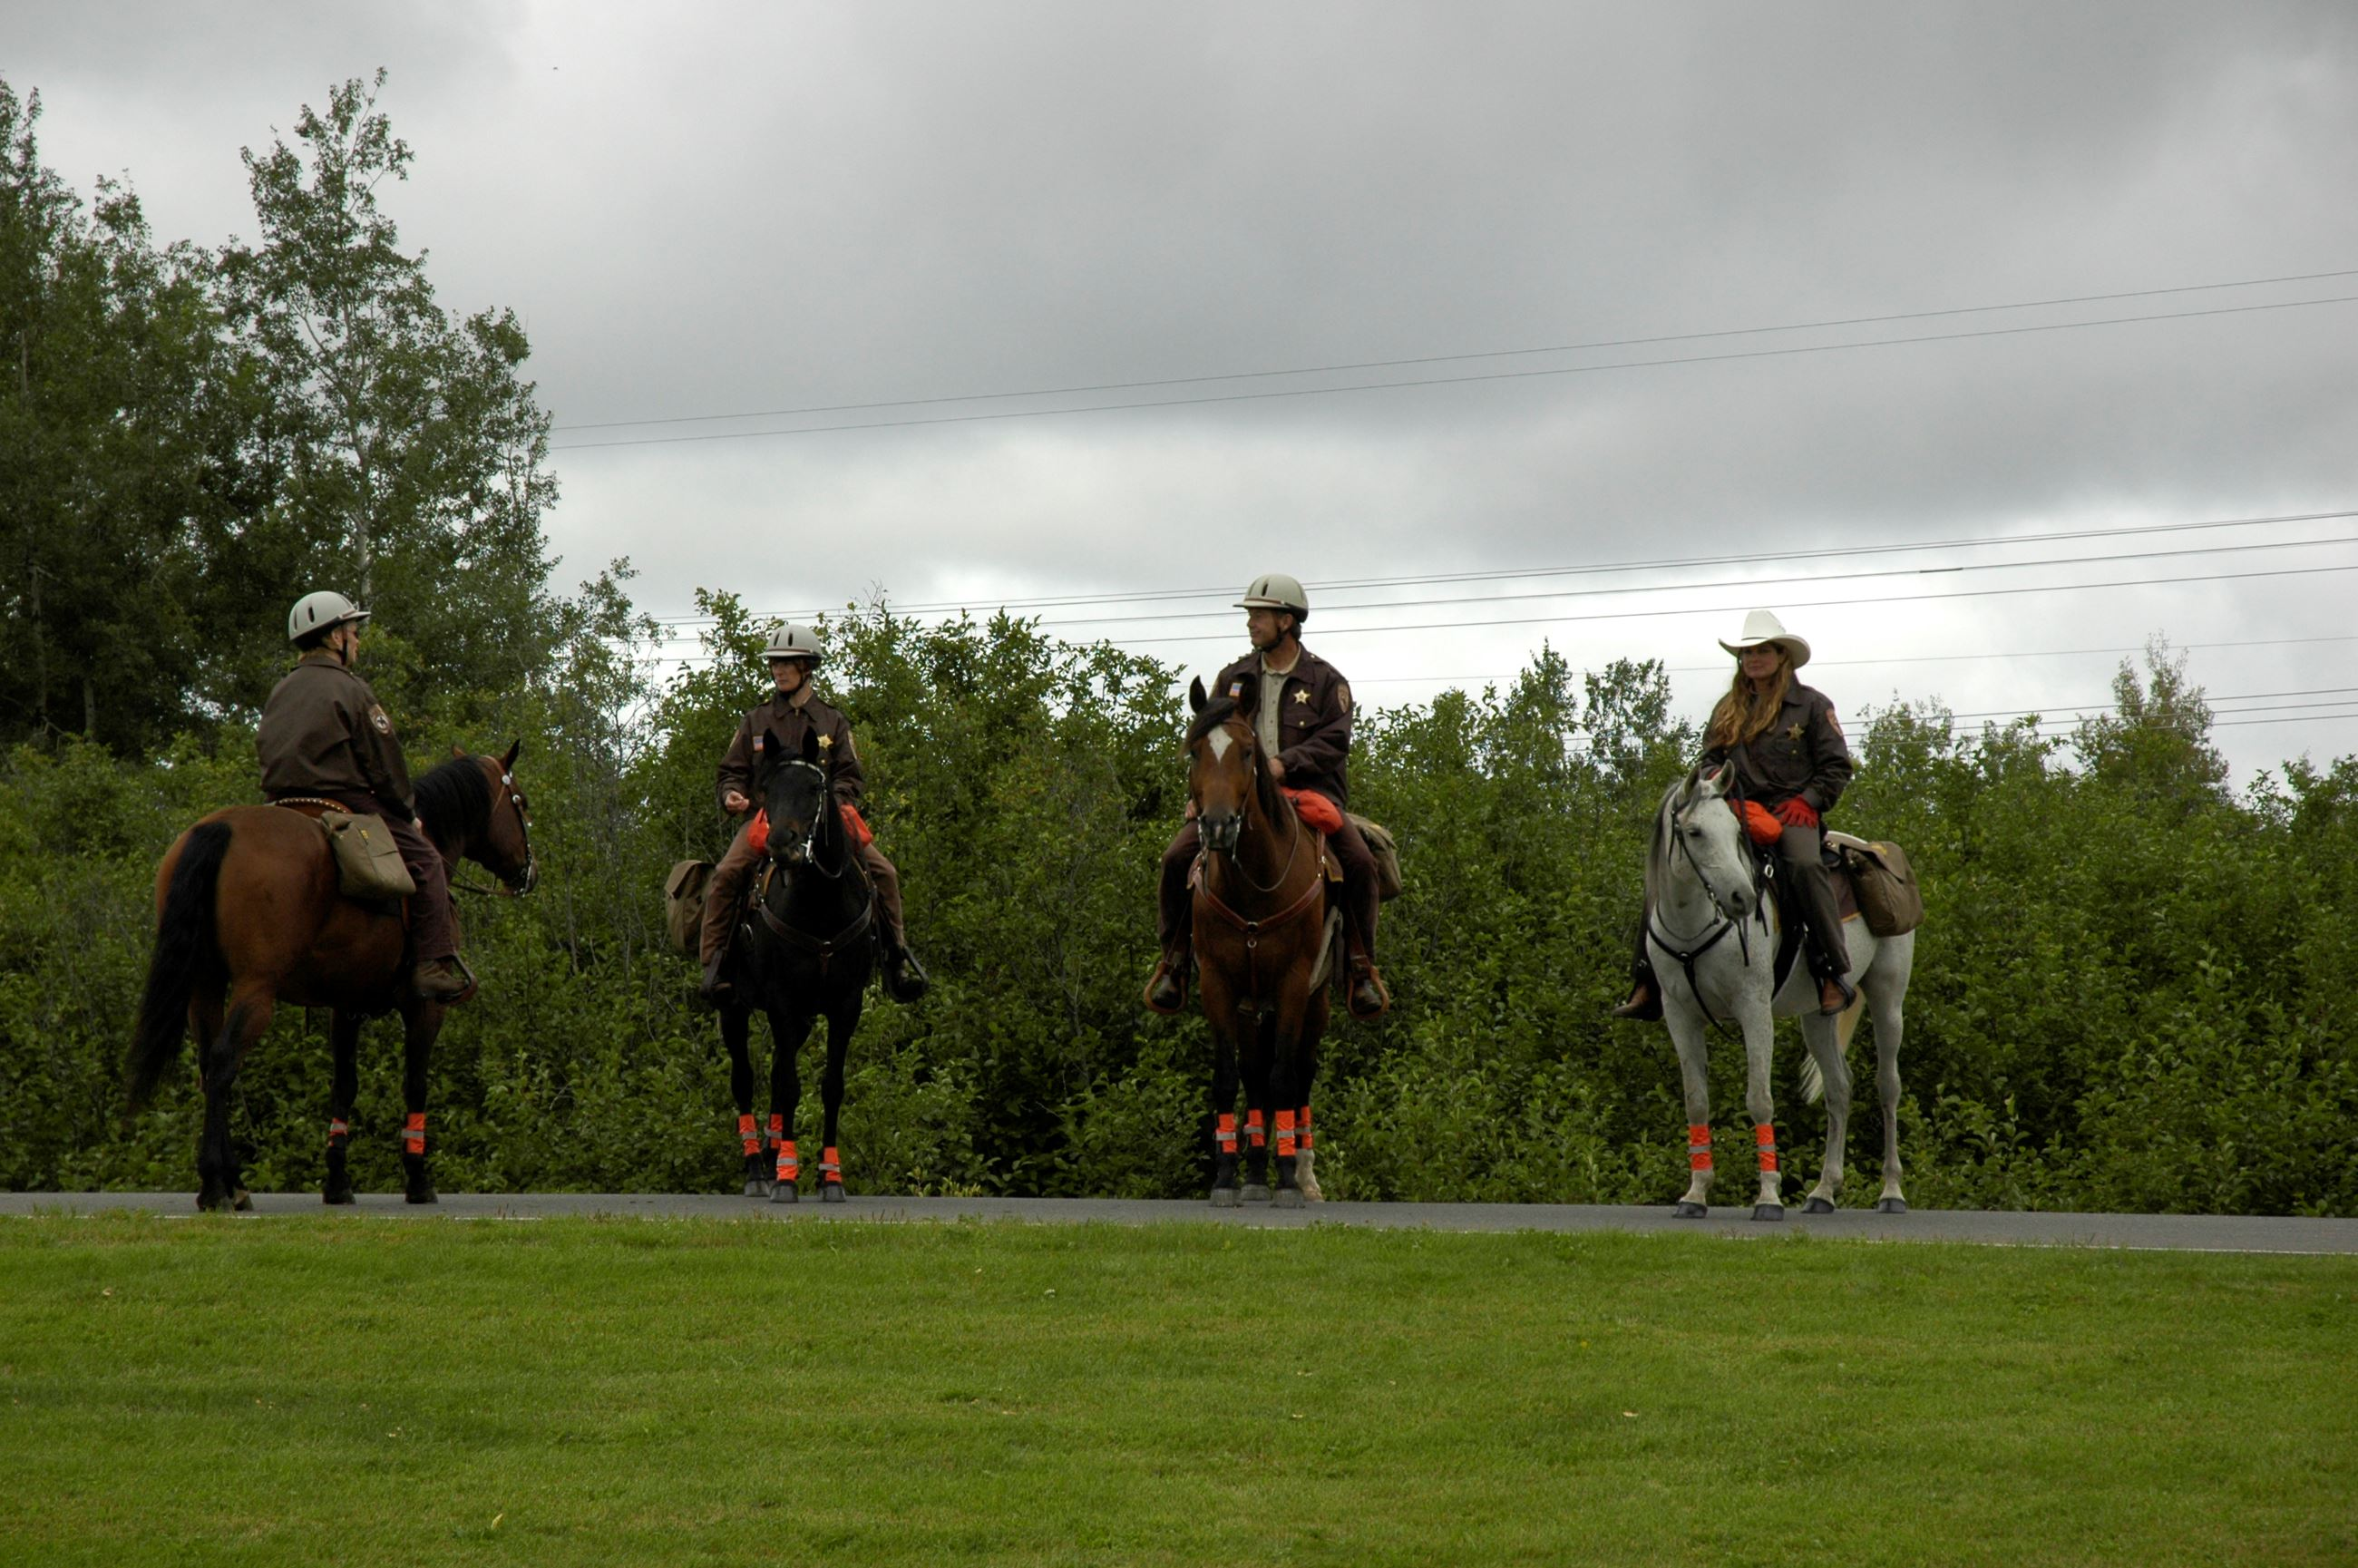 Four mounted officers giving demonstration